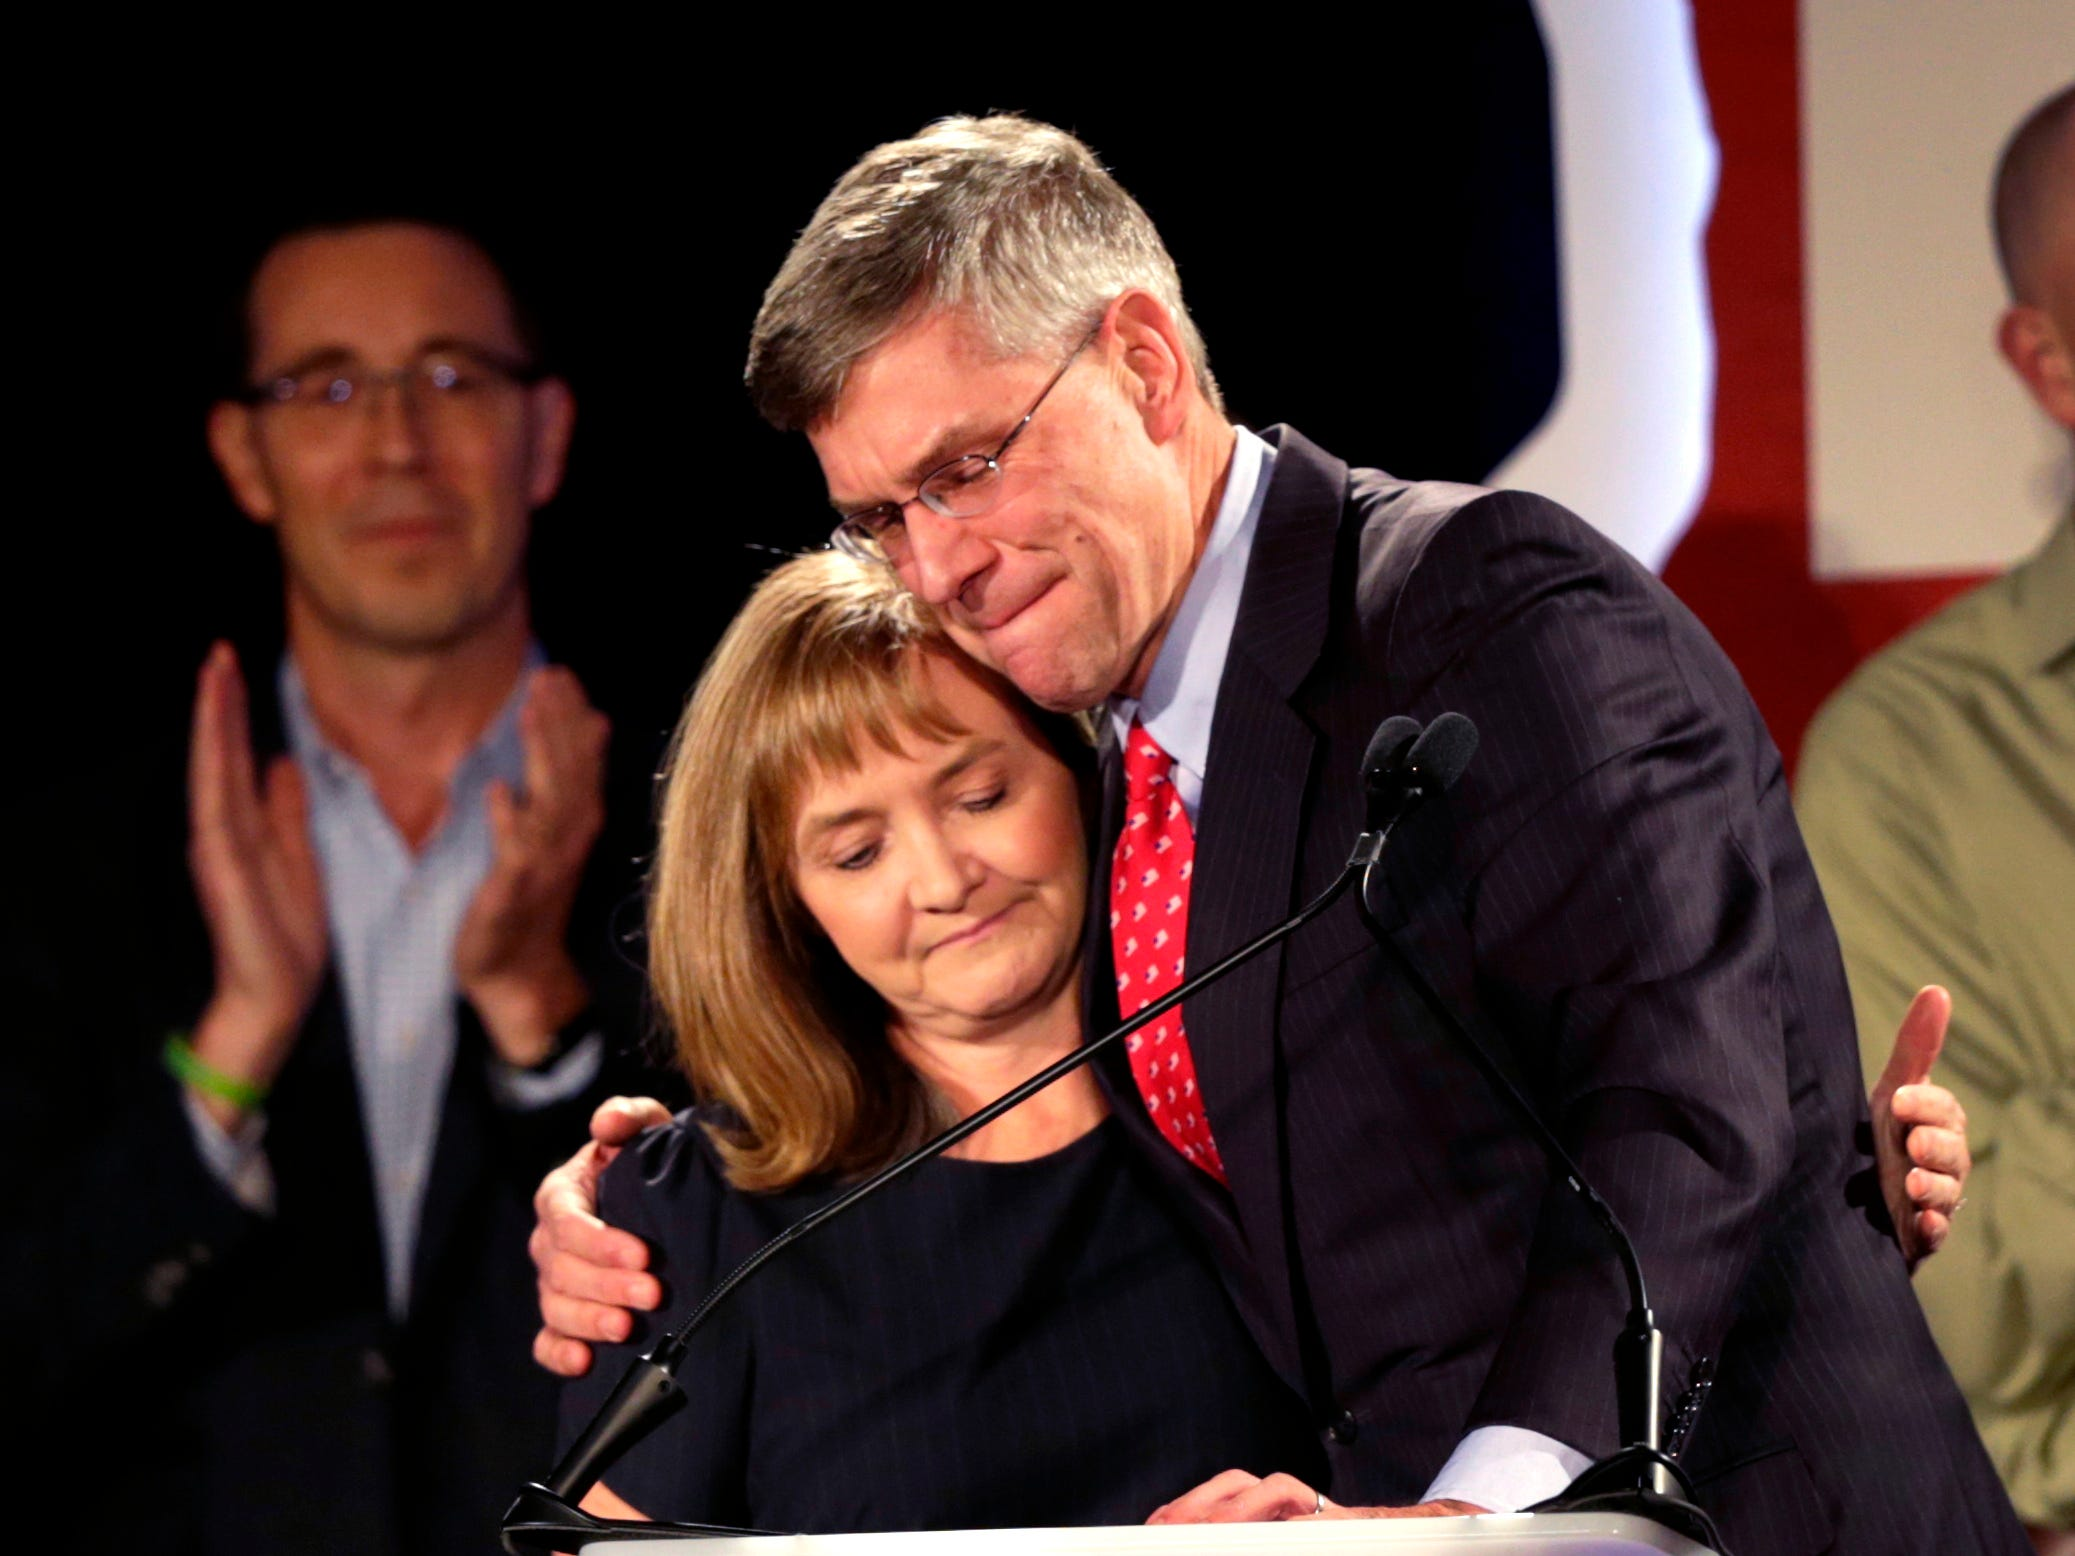 U.S. Rep. Erik Paulsen, running in Minnesota's 3rd Congressional District race, hugs his wife, Kelly, after making his concession speech at his Republican election night party Tuesday, Nov. 6, 2018, in Bloomington, Minn.